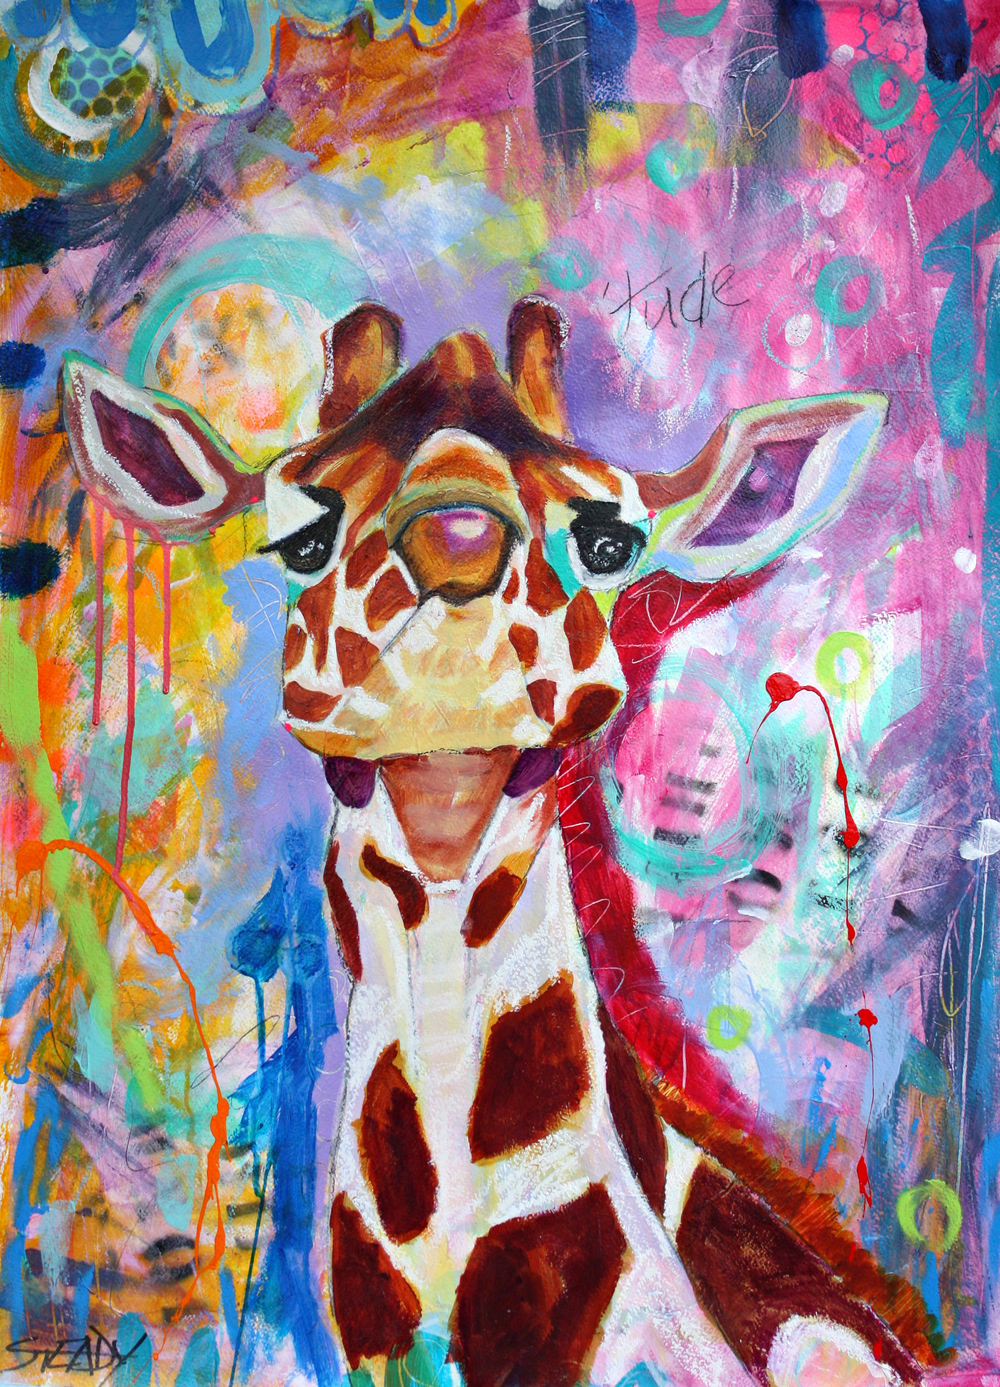 'Tude . . . $300 (SOLD) - 2016 Animal Exhibition Blue Ribbon